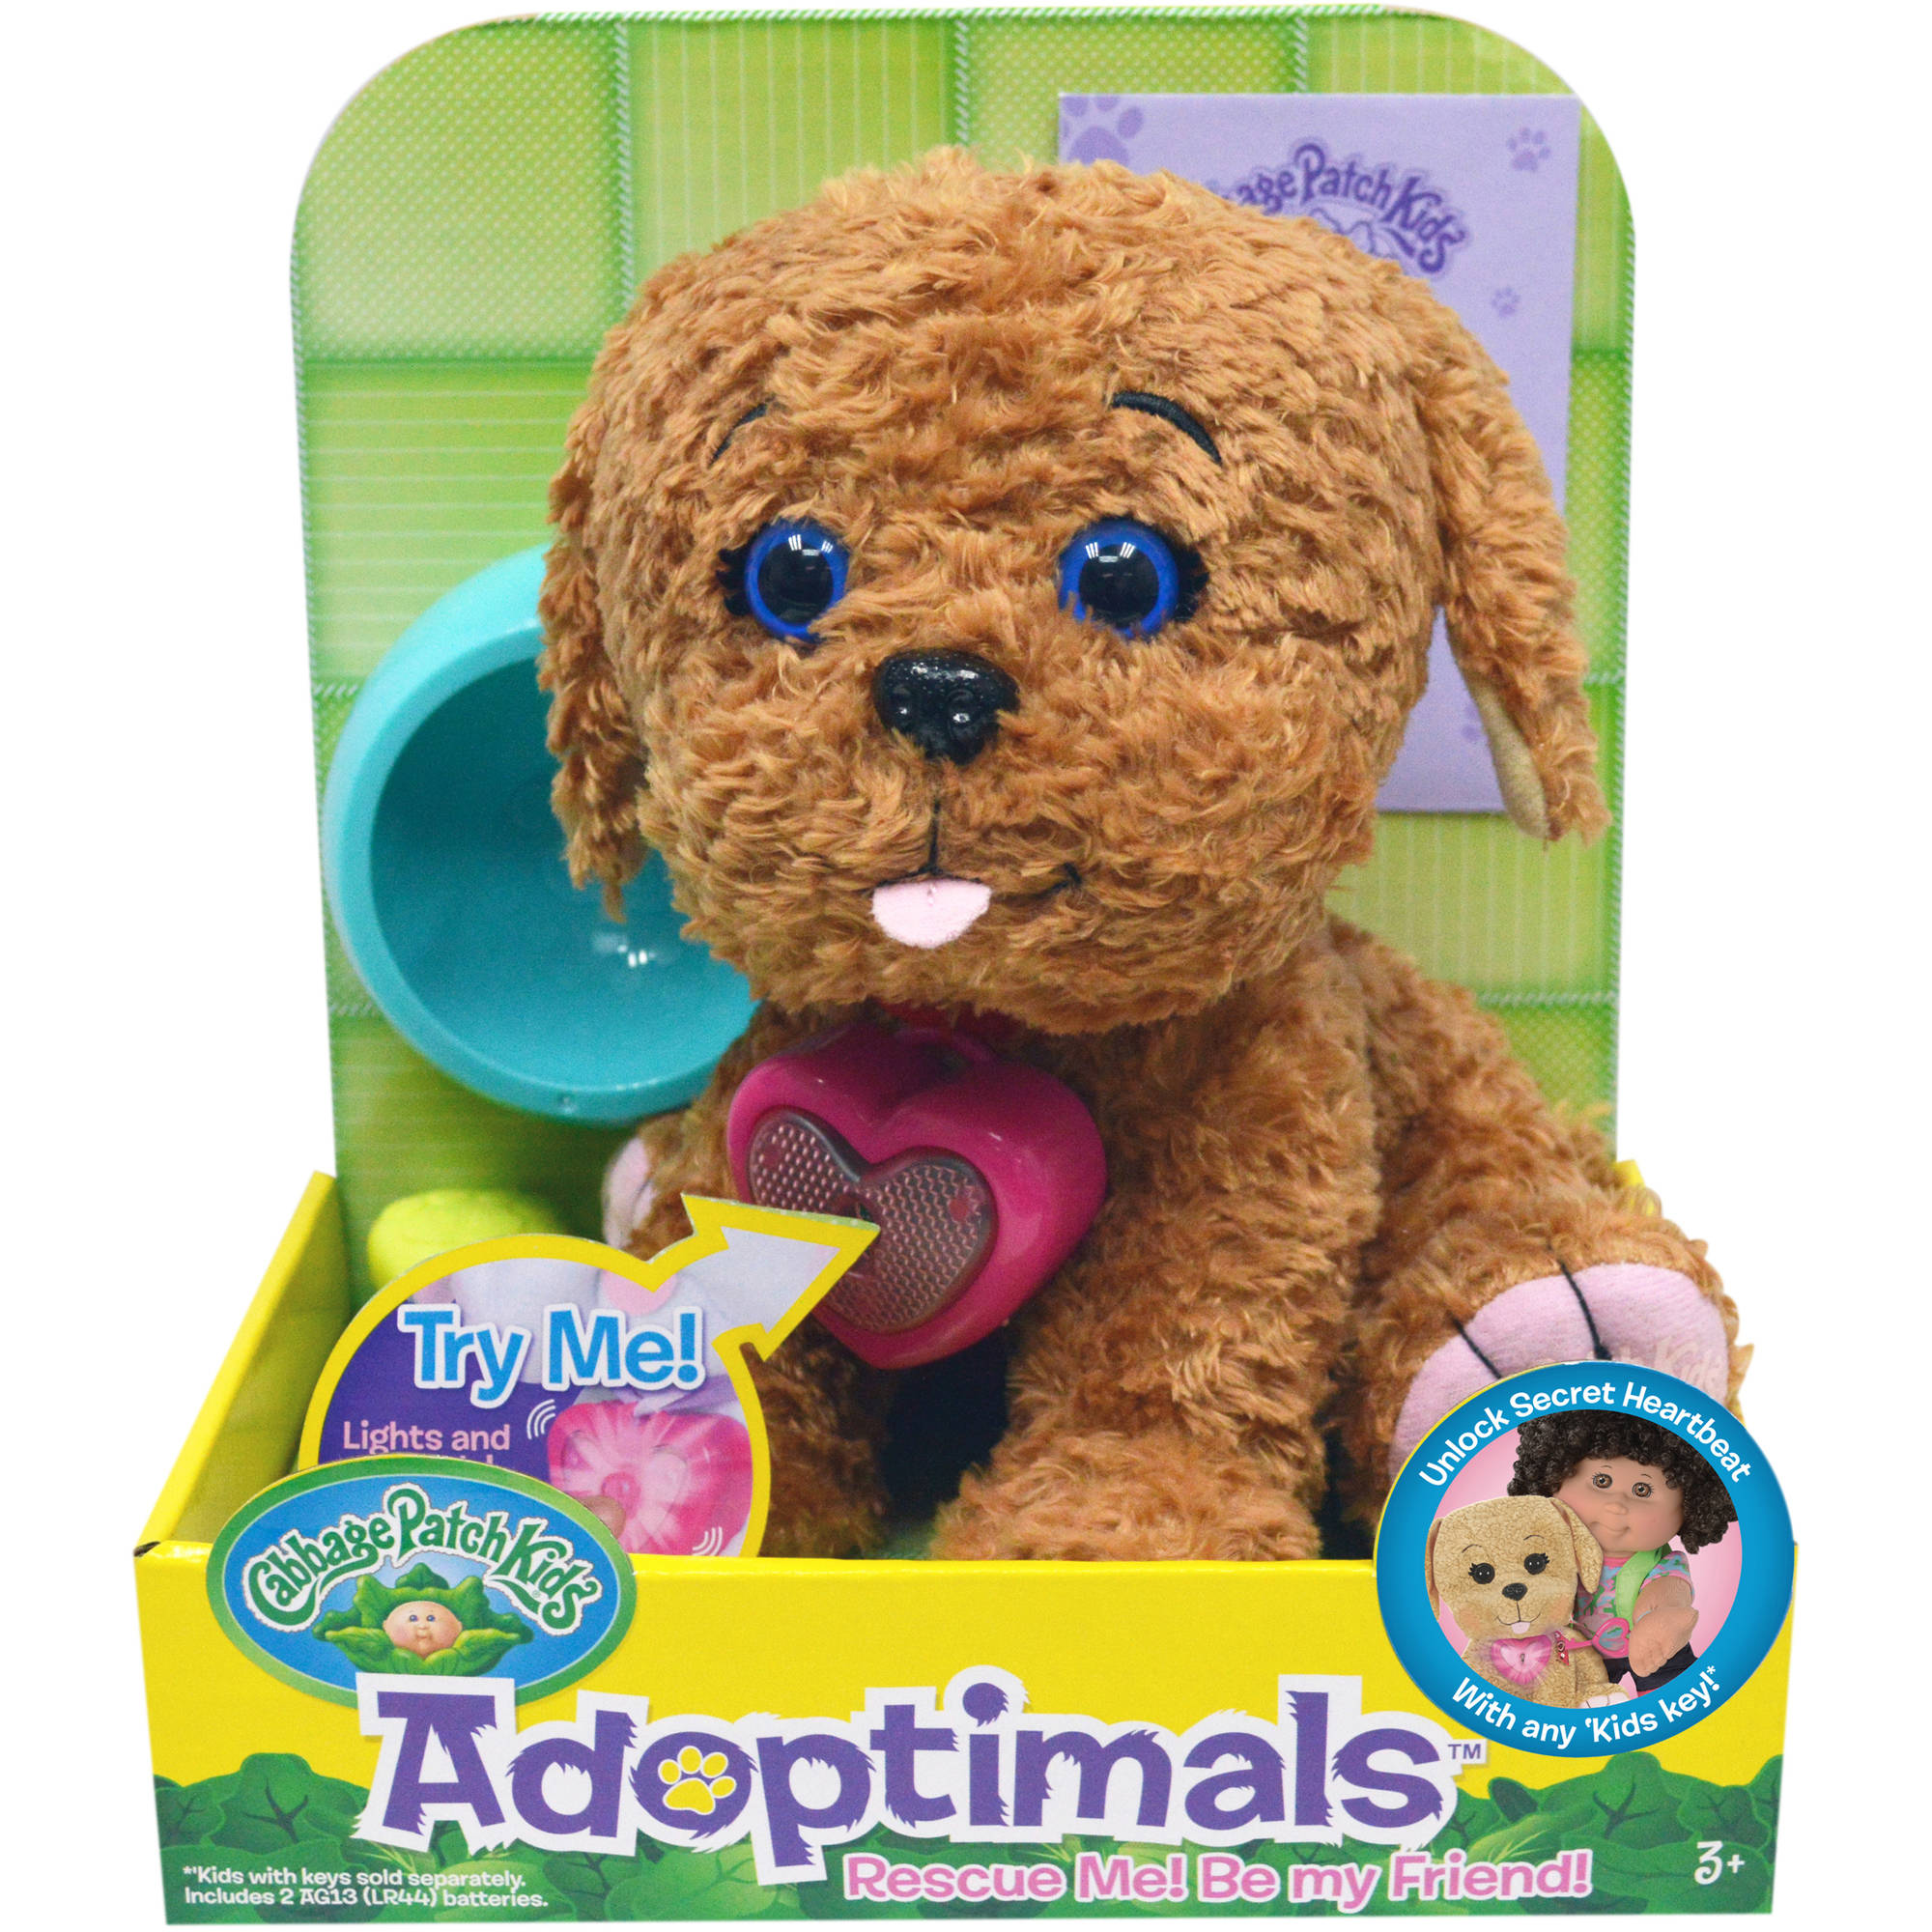 "Cabbage Patch Kids Adoptimals 9"" Labradoodle with Sound"